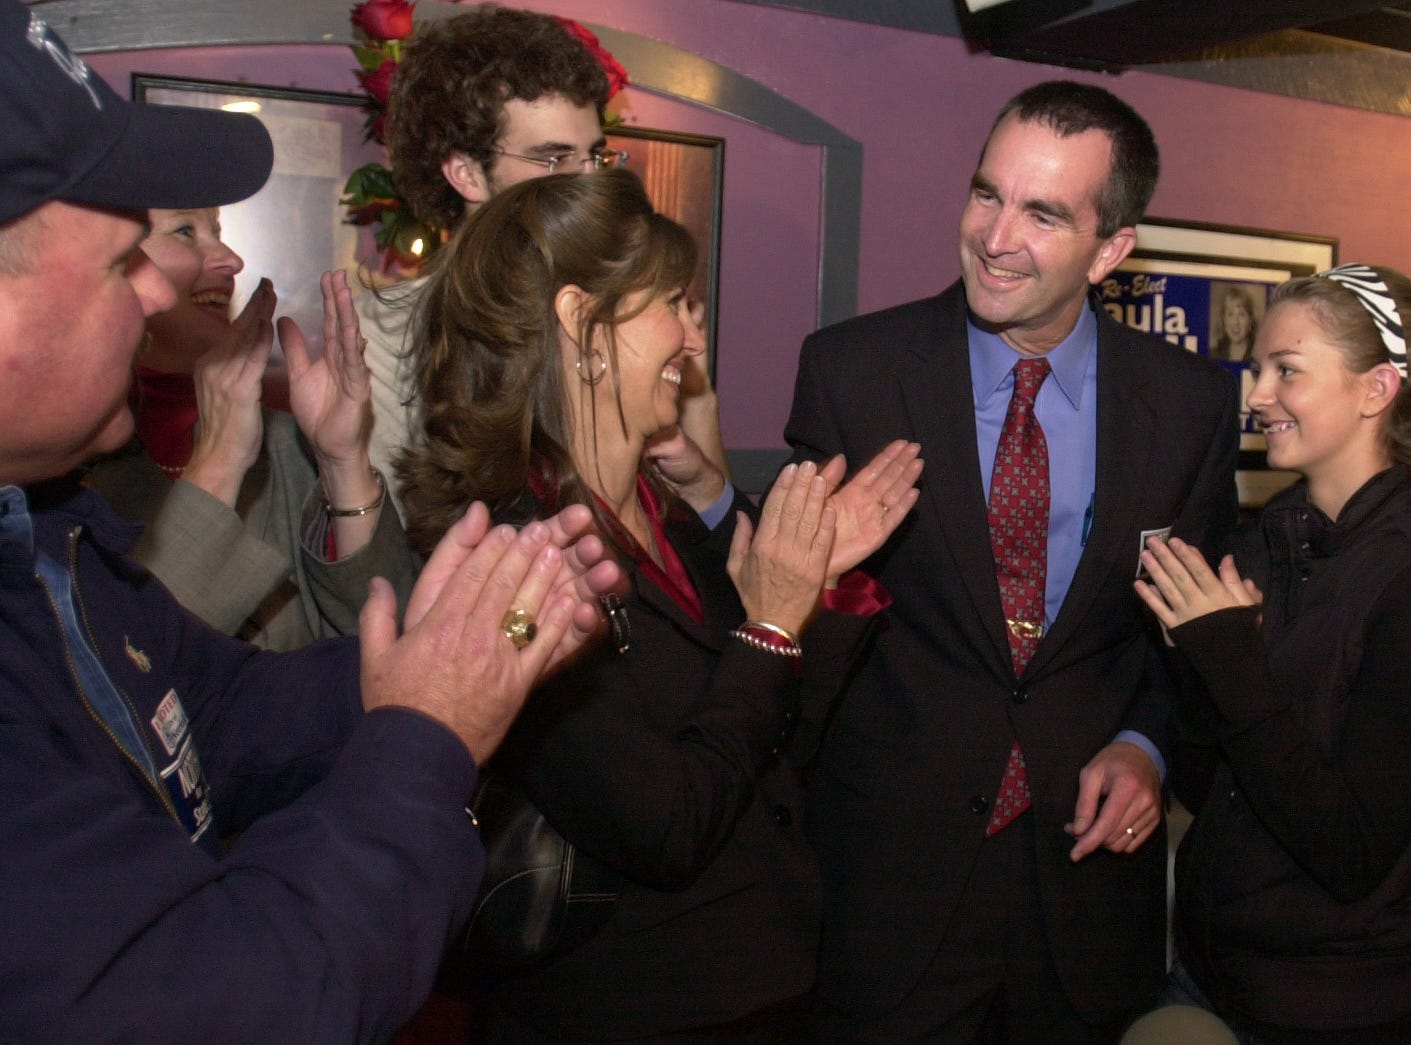 State Sen.-elect Ralph Northam is congratulated by supporters after winning the state's 6th District seat in the state Senate over incumbent Nick Rerras on Tuesday, Nov. 6, 2007, in Norfolk.